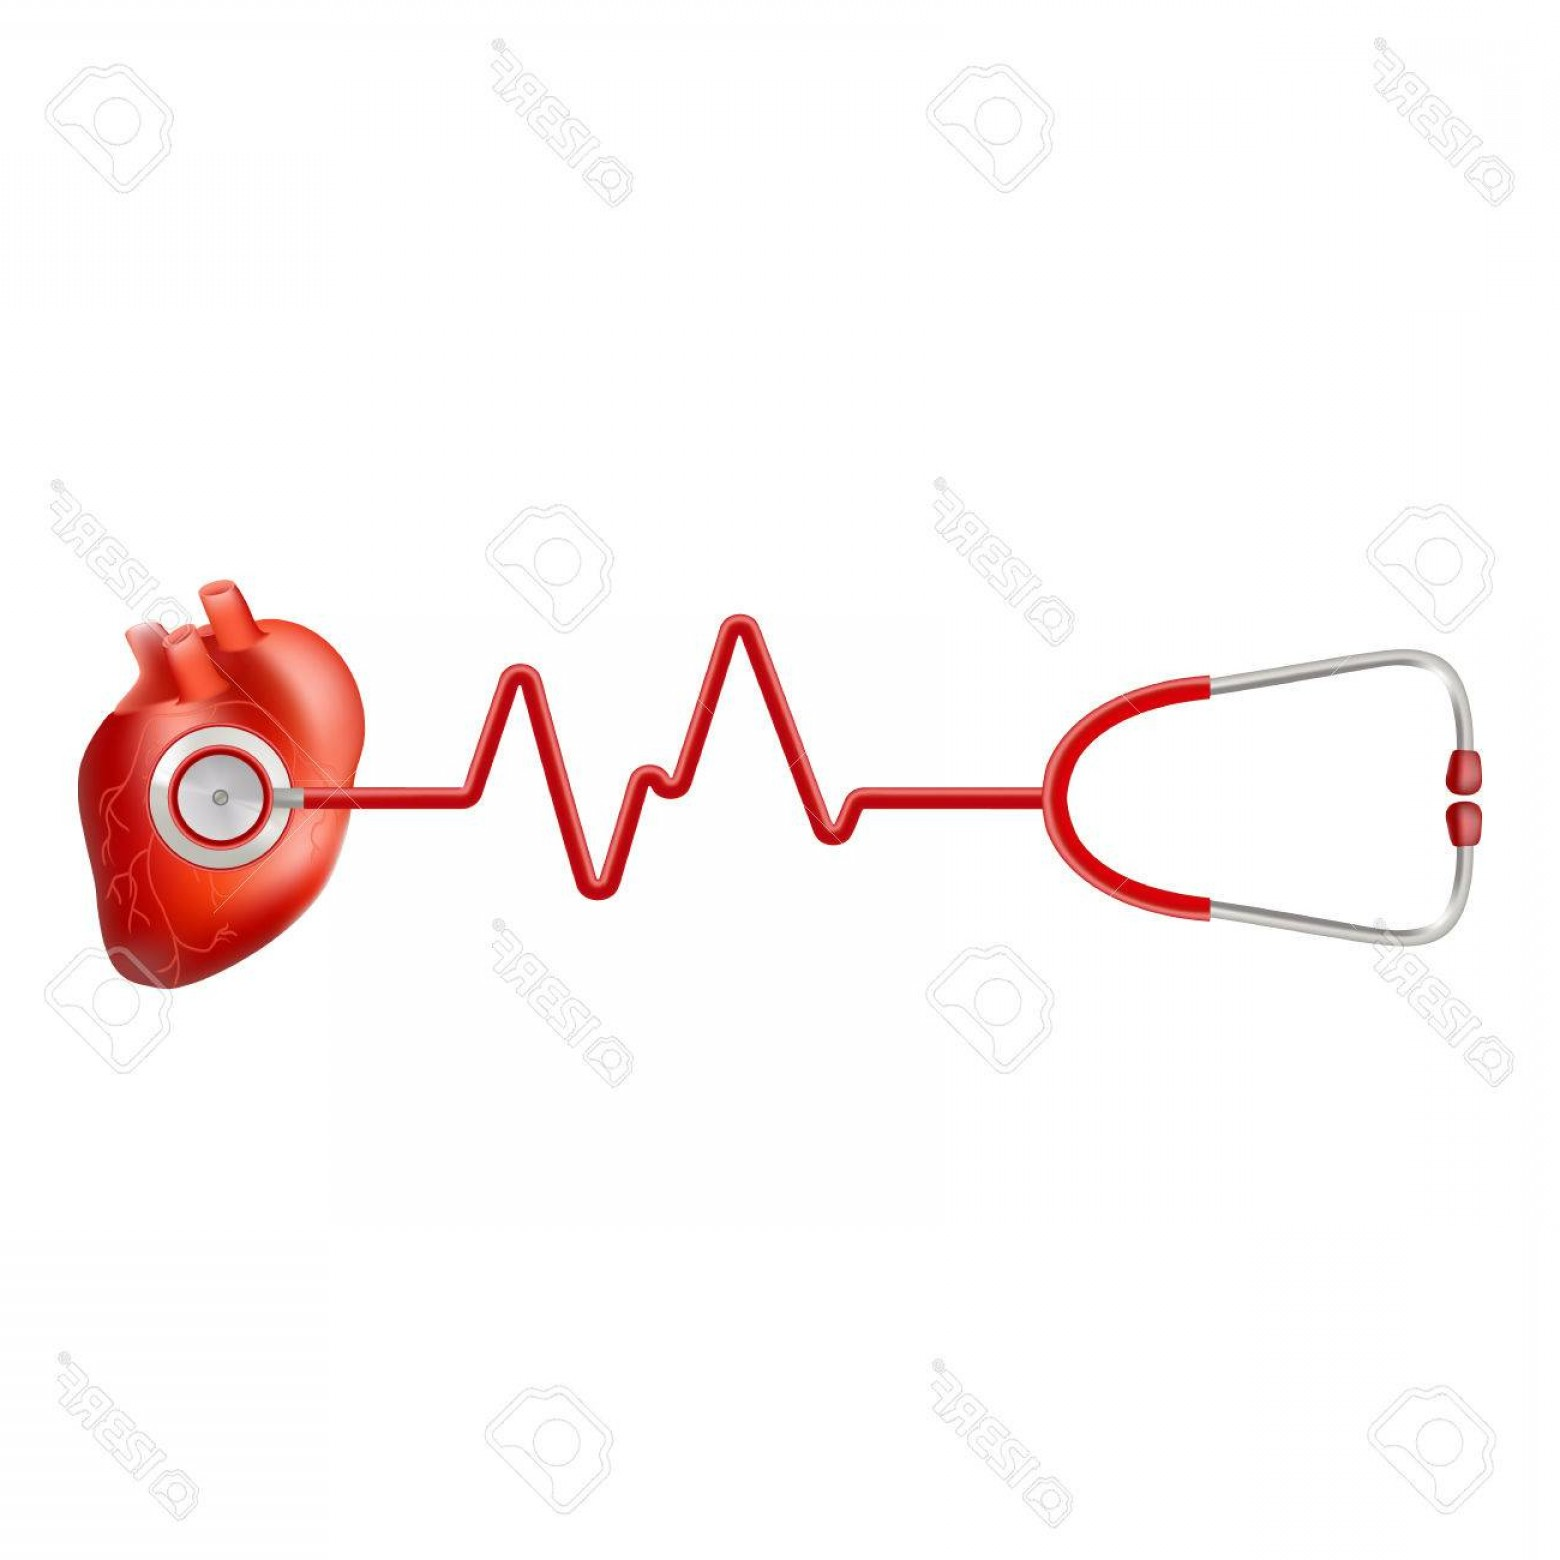 Heart With EKG Line Vector: Photostock Vector Human Heart And Heart Beat On Ekg With Stethoscope Isolated On A White Background Realistic Vector I